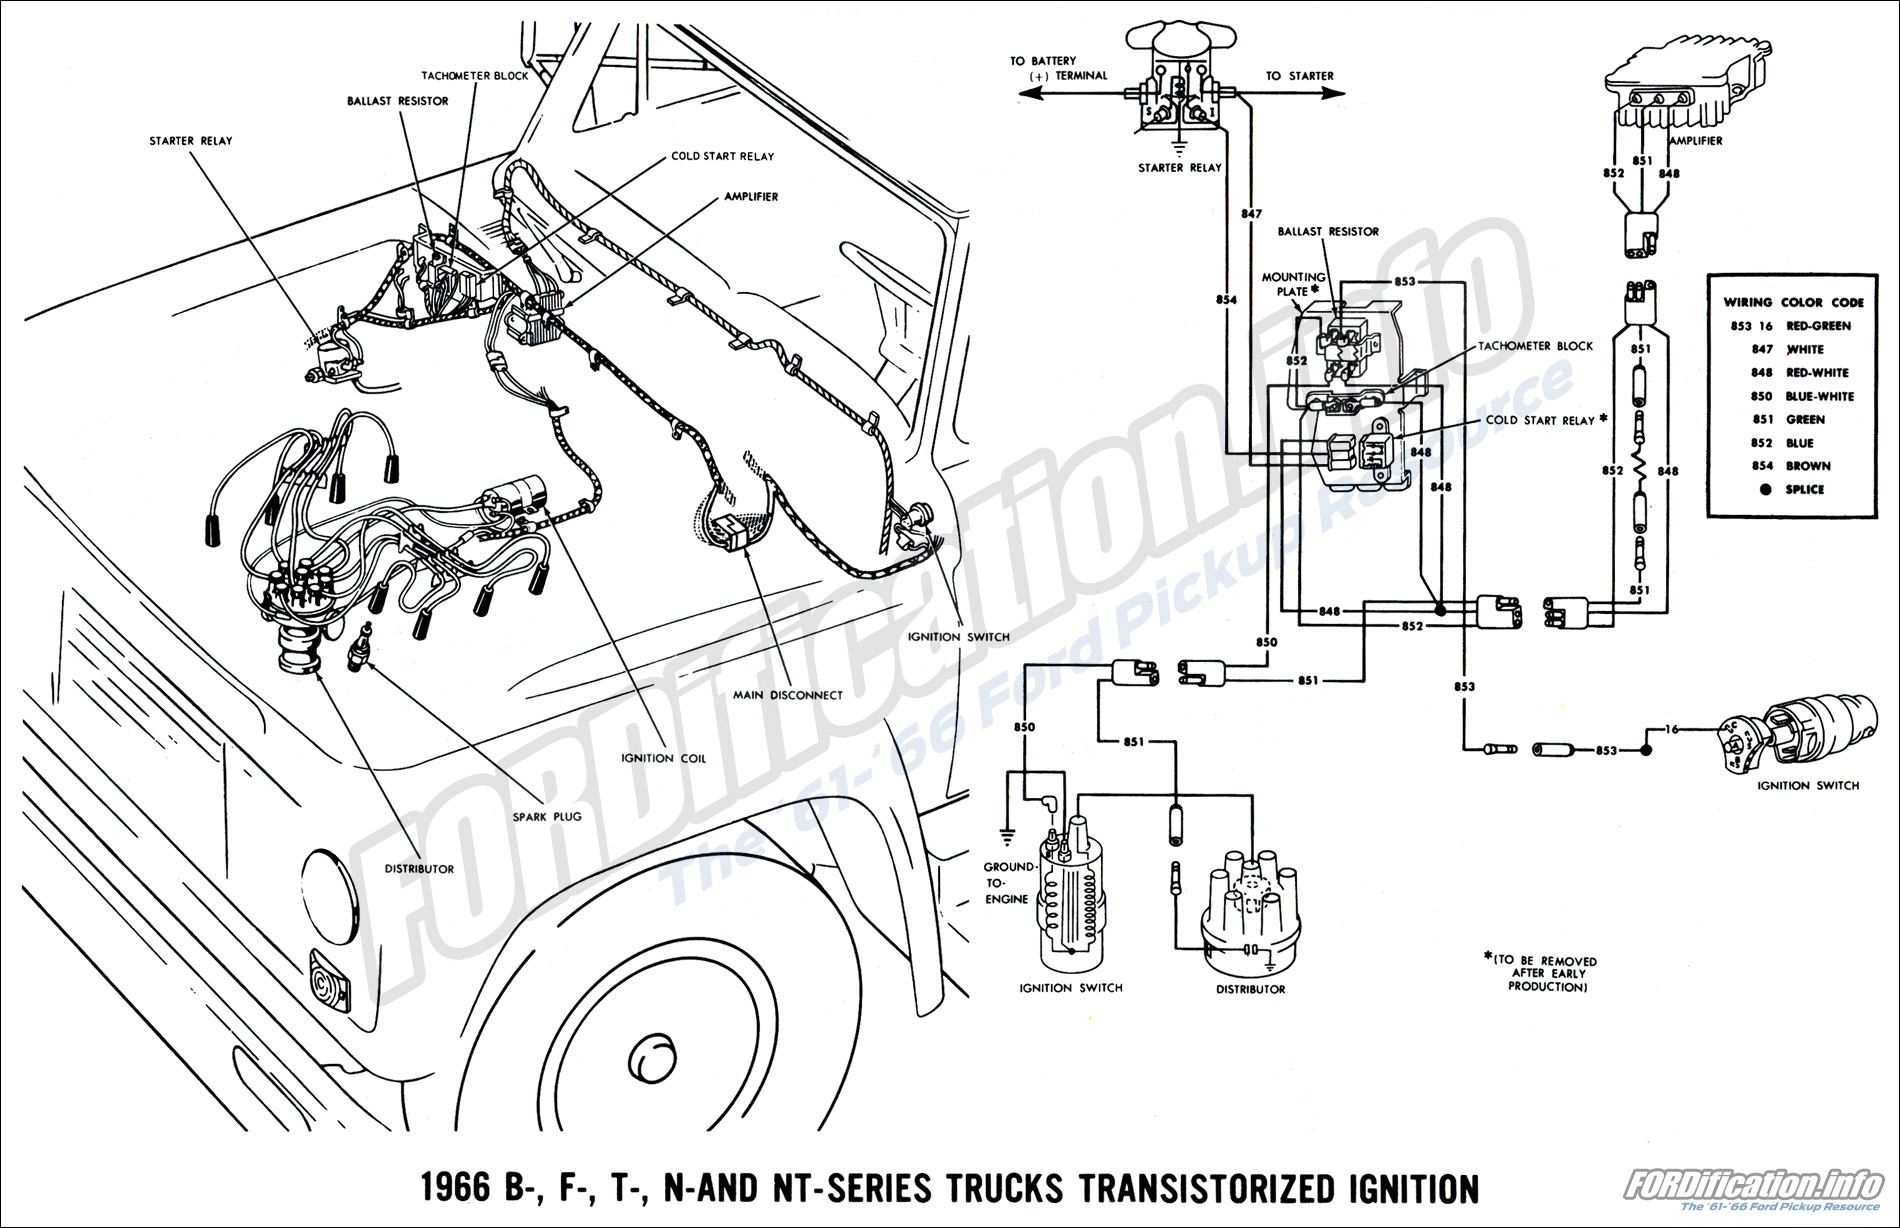 [CSDW_4250]   1966 Ford Truck Wiring Diagrams - FORDification.info - The '61-'66 Ford  Pickup Resource | 1966 Ford Truck Wiring Diagram |  | FORDification.info